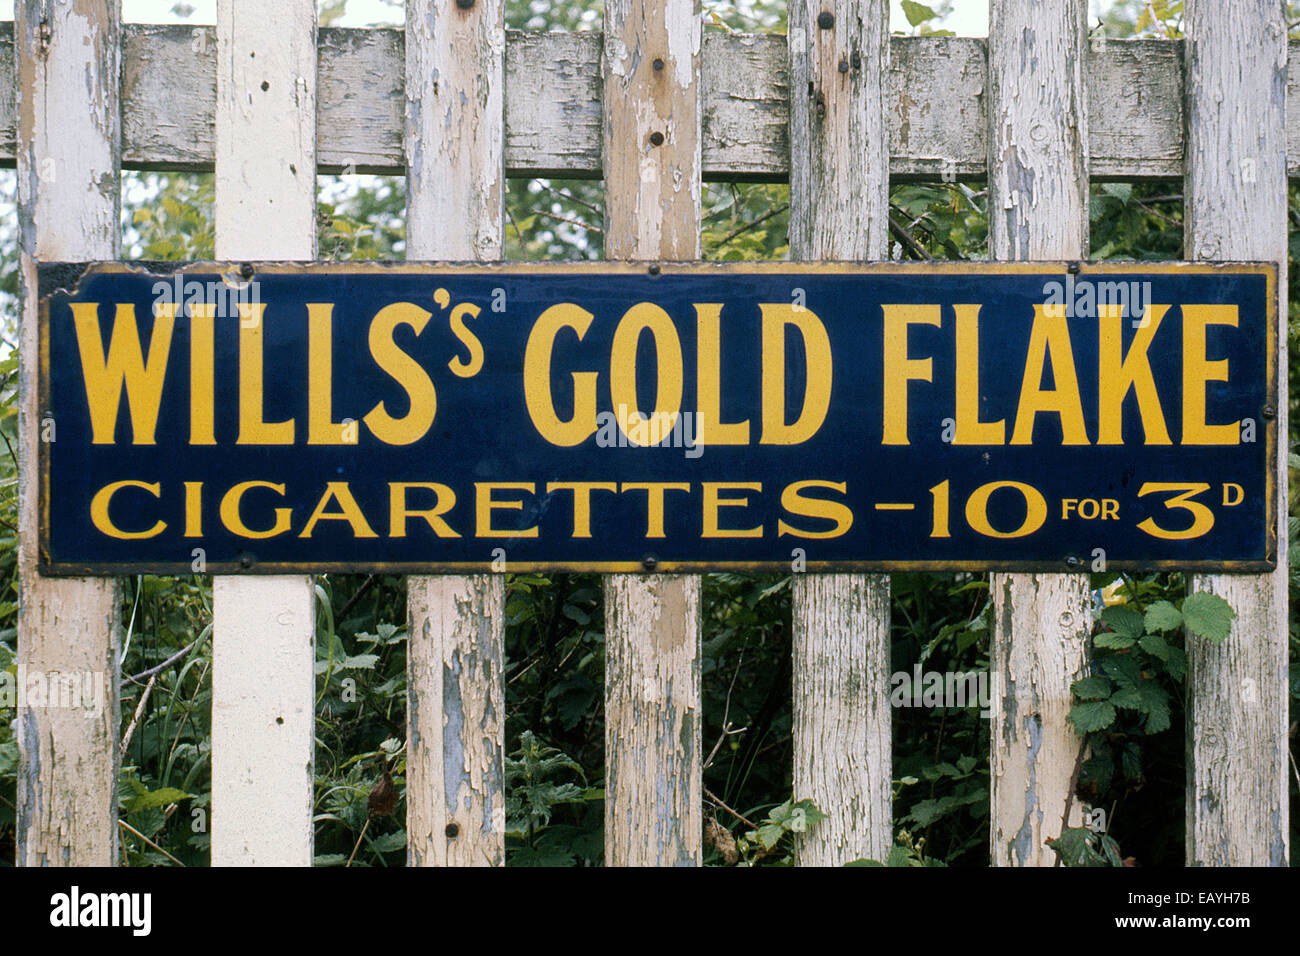 Enamelled advertising sign Wills's Gold Flake cigarettes - Stock Image